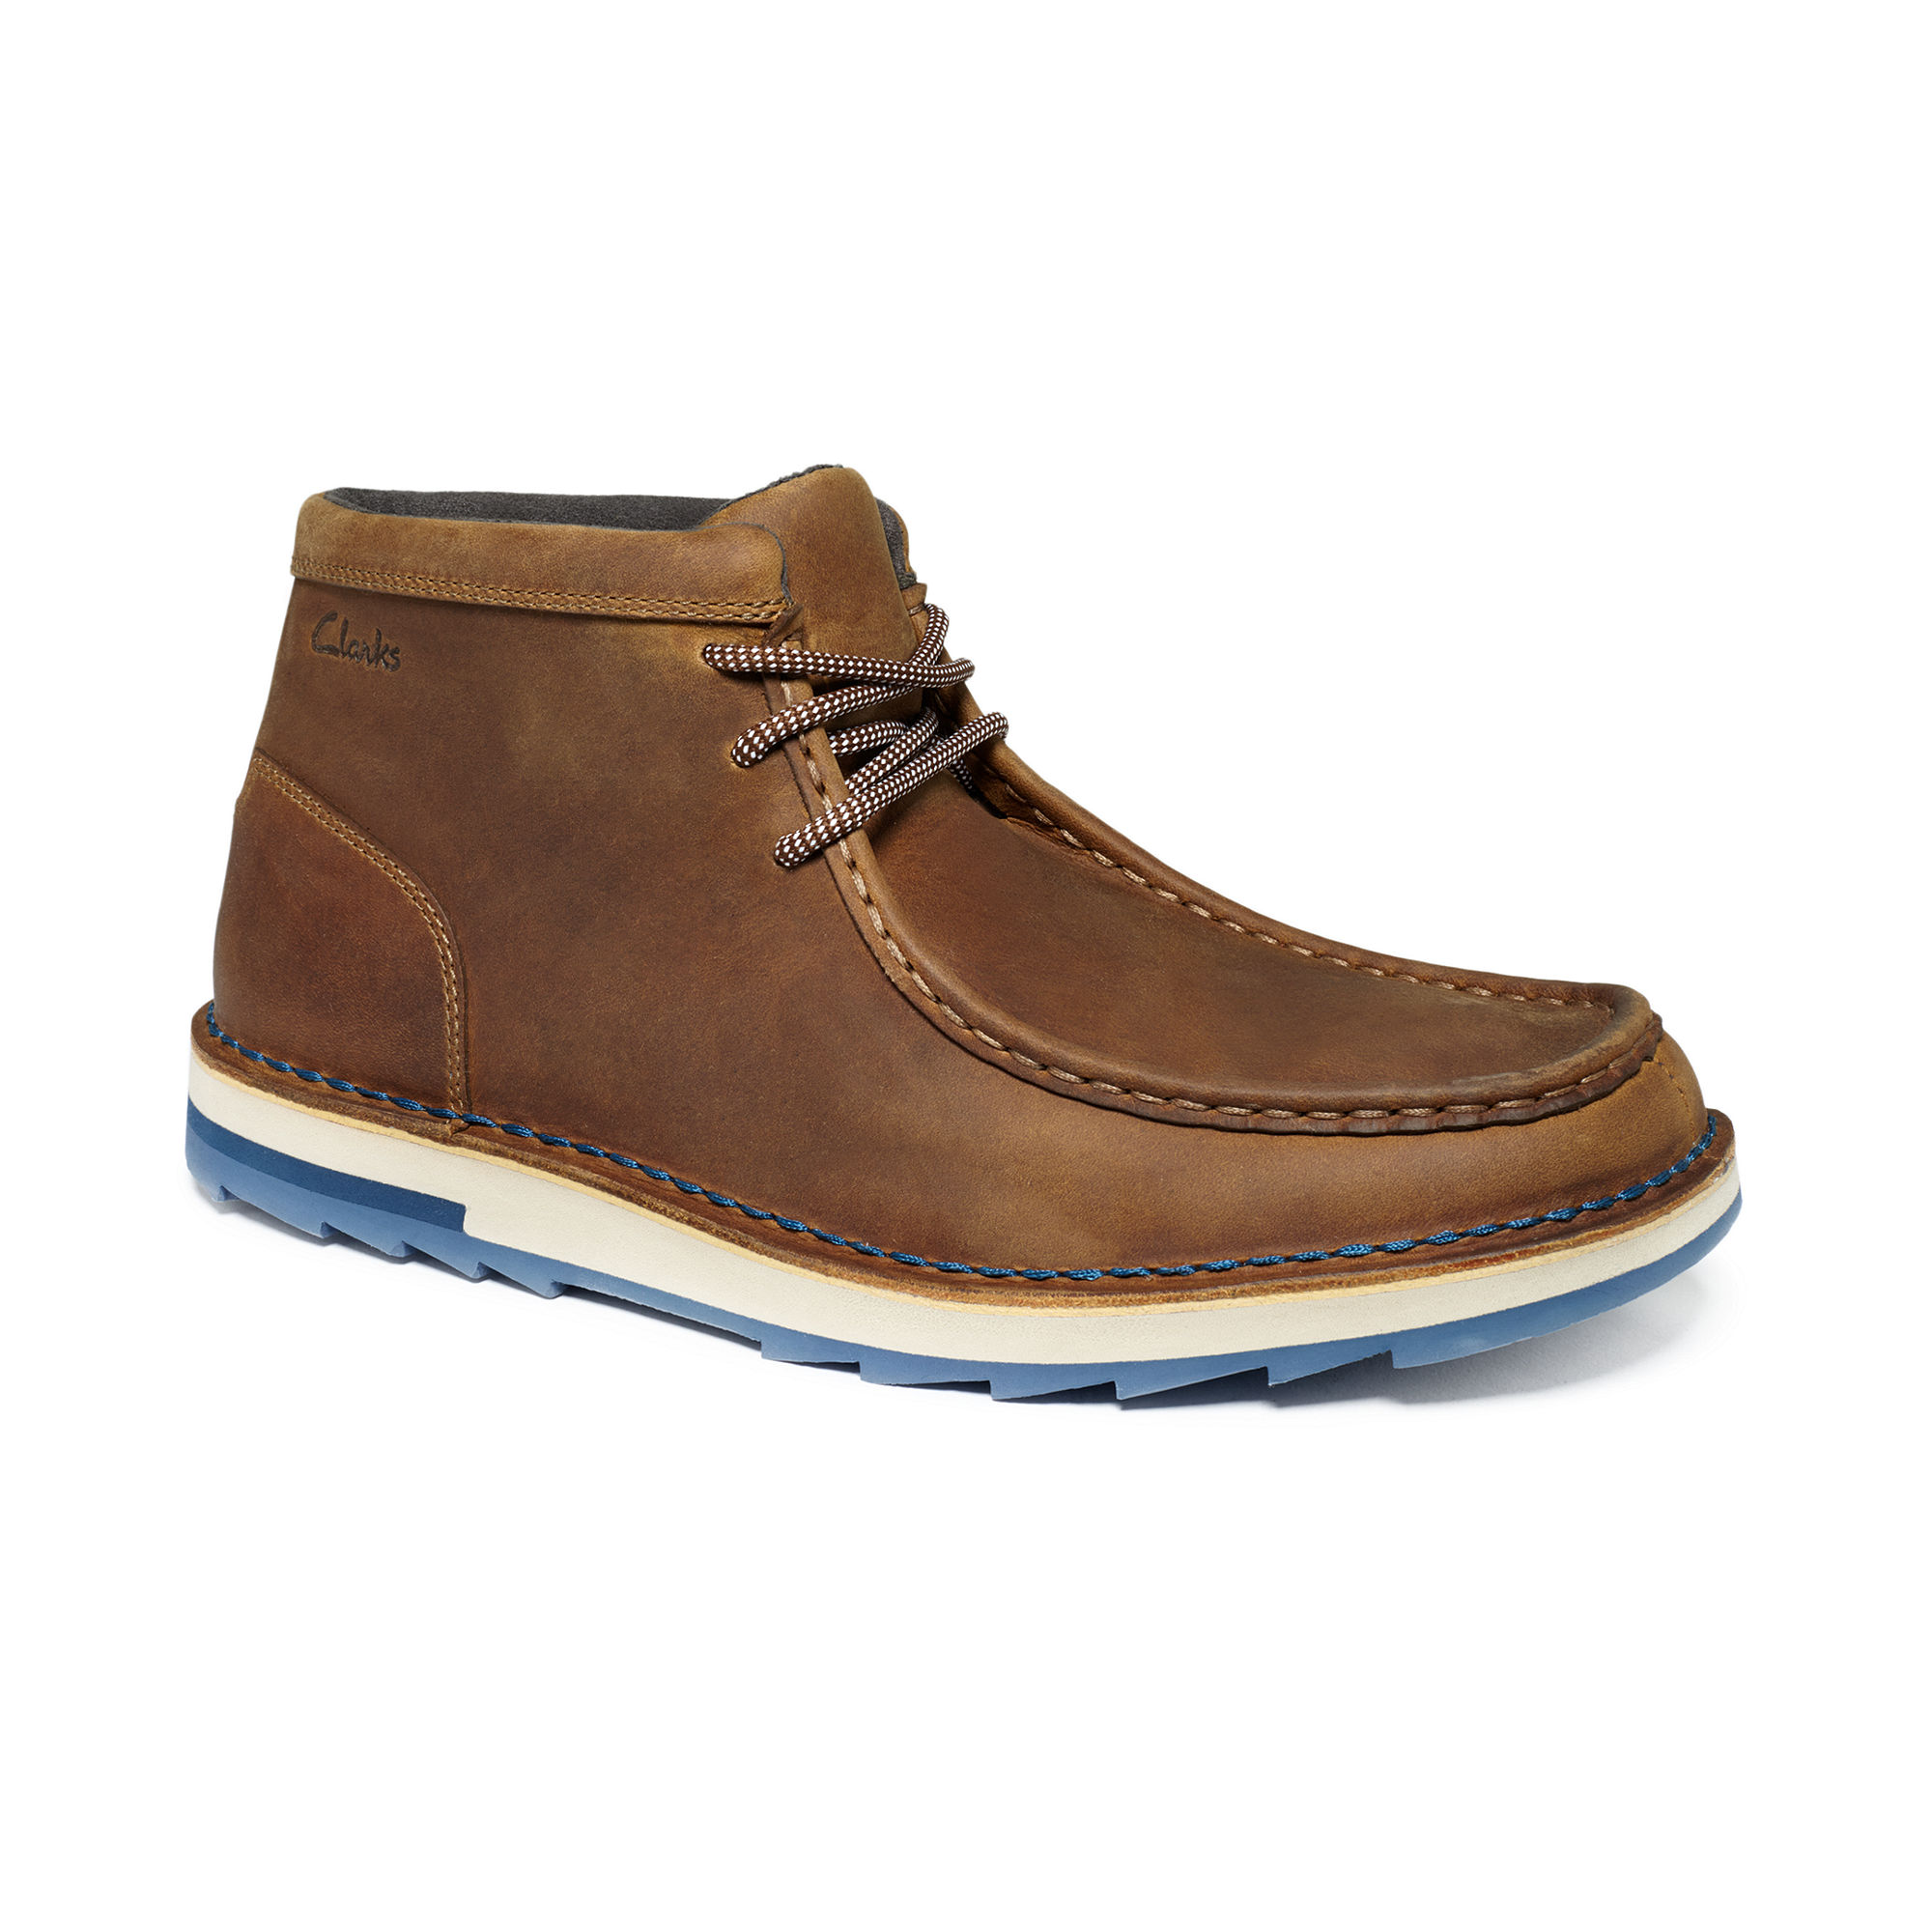 clarks mumford folk chukka boots in brown for lyst